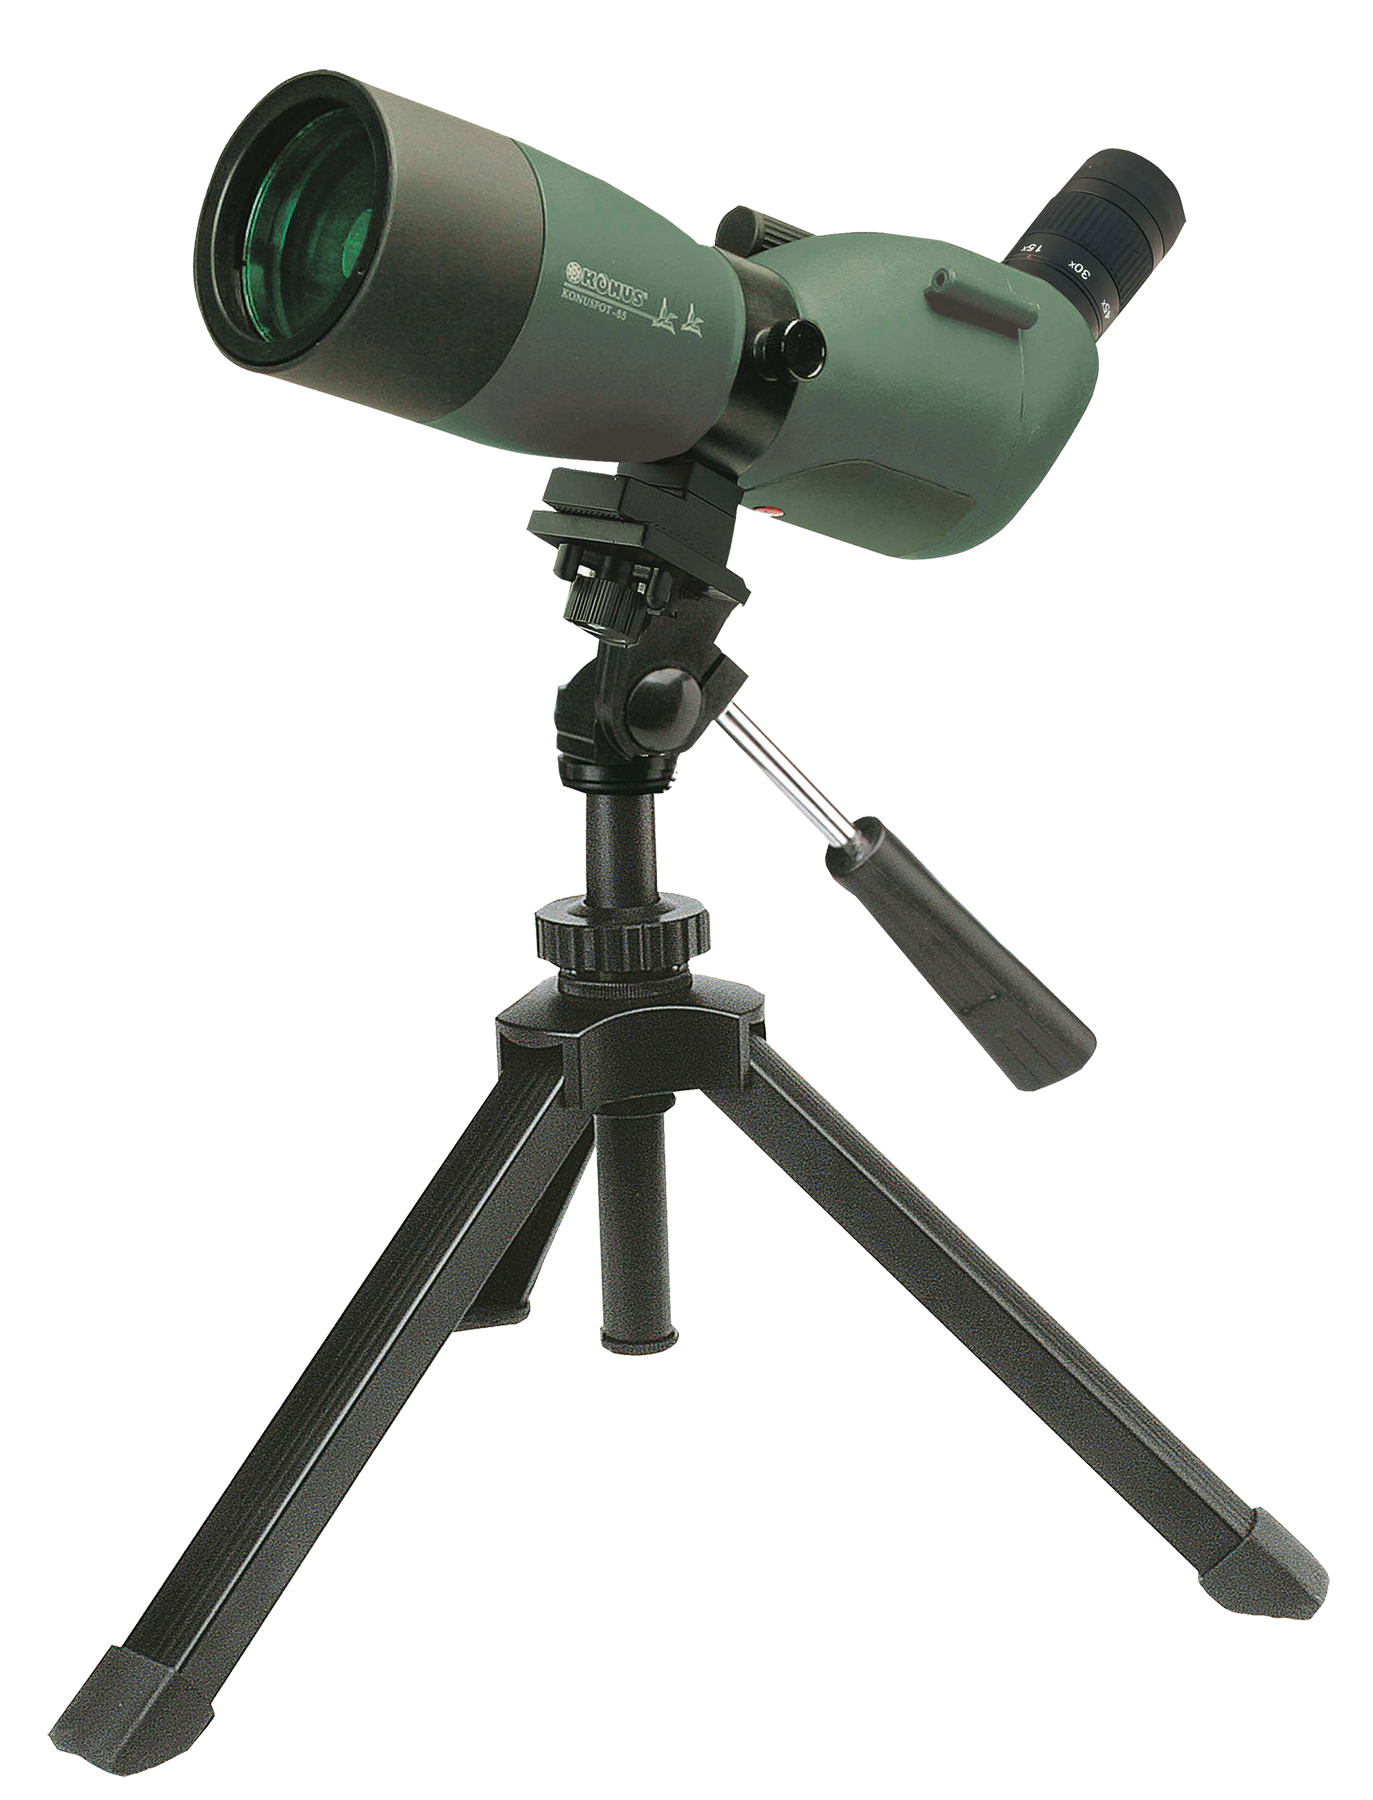 Konus 7116B KonuSpot 15-45x 65mm 115-59ft @ 1000 yds FOV Angled Green w/Tripod, Photo Adapter, Case